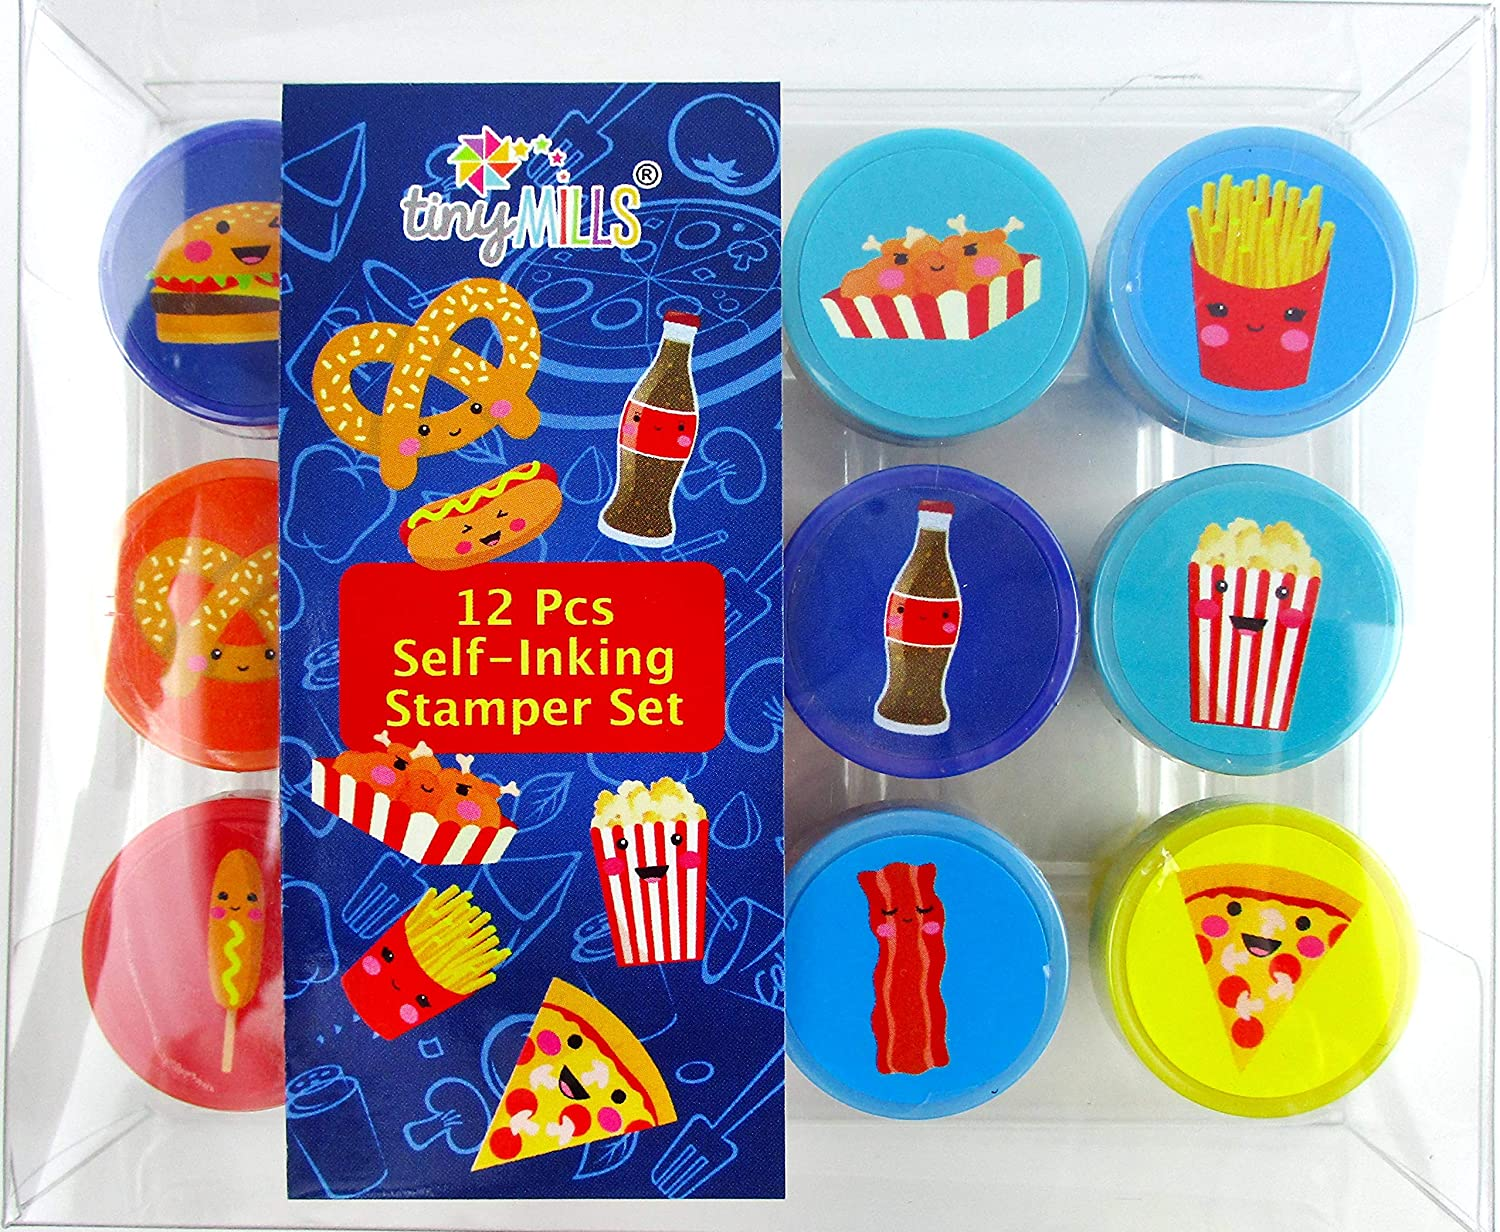 TINYMILLS 12 Pcs Cute Cartoon Food Stamp Kit for Kids